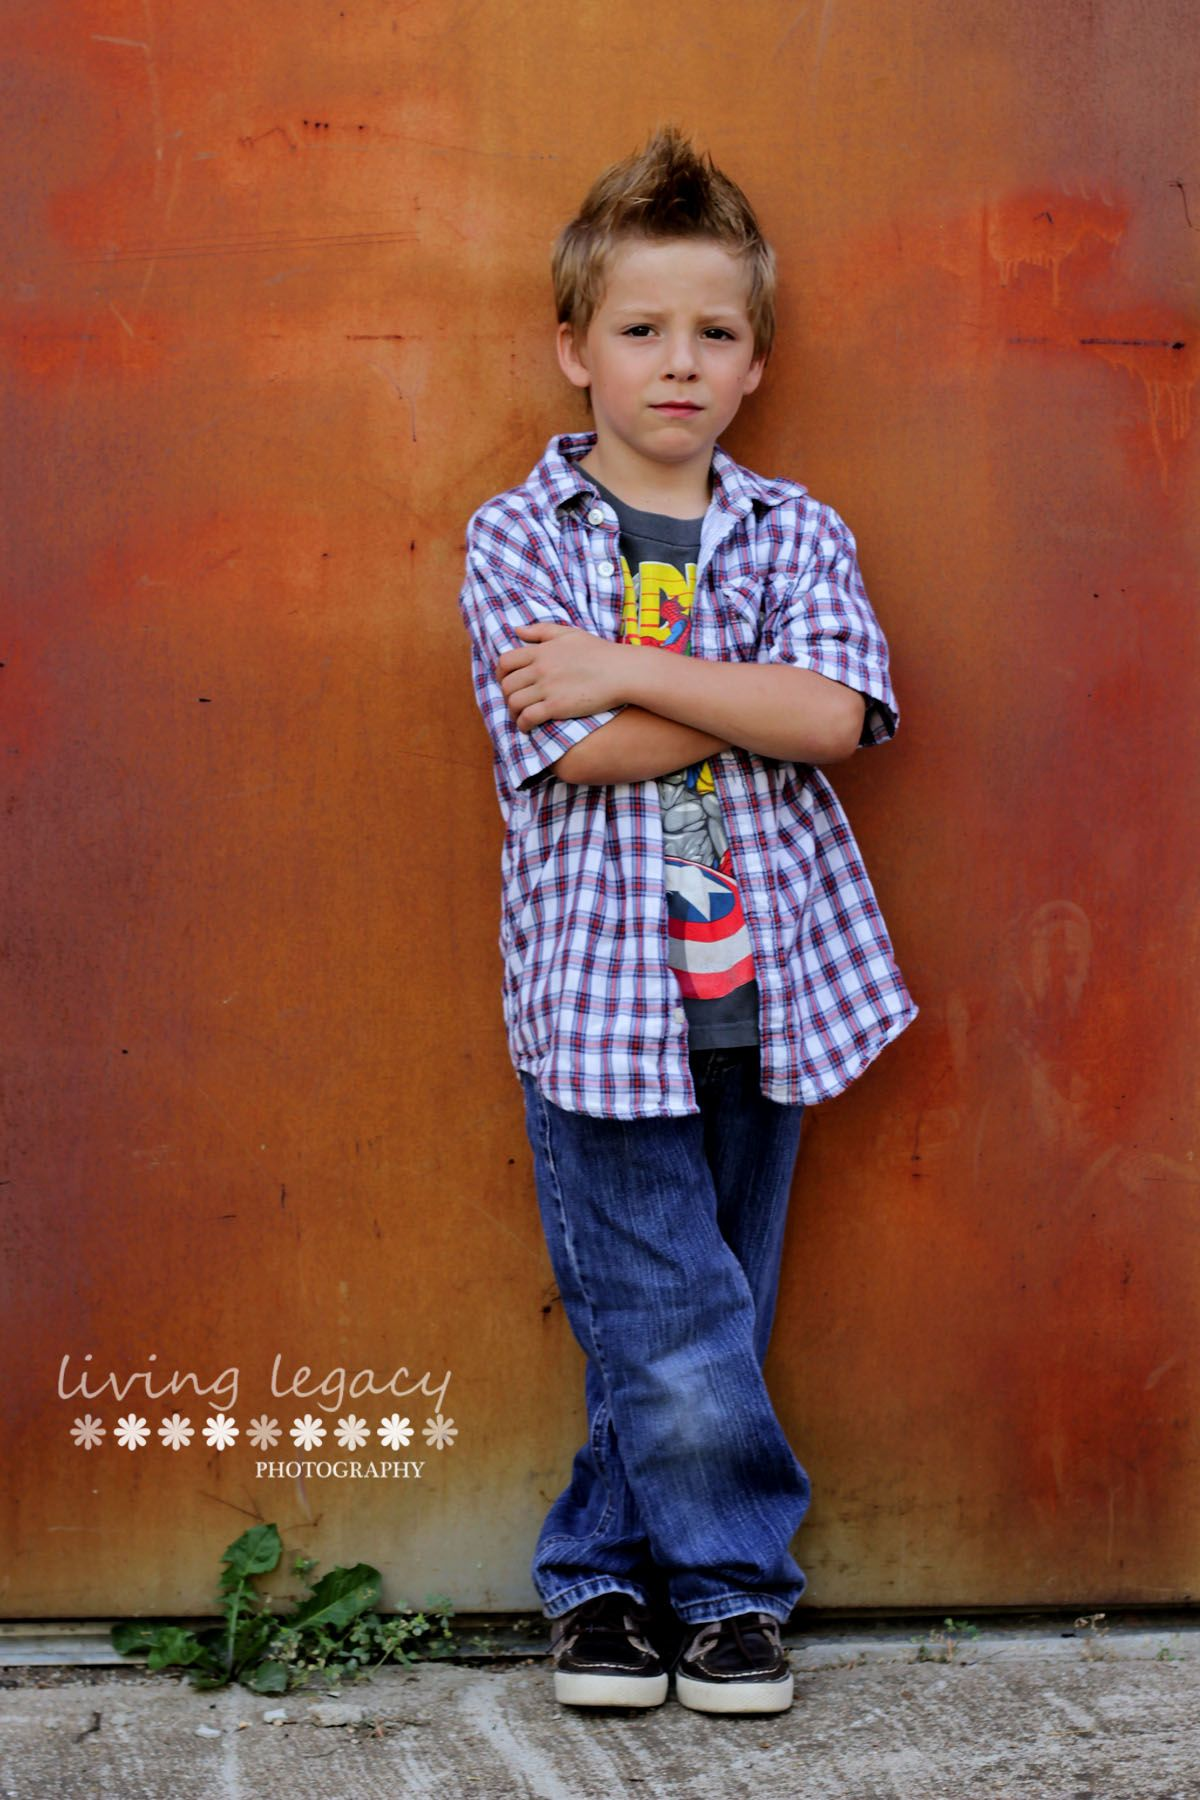 Living Legacy Photography 6 year old boy session outdoor